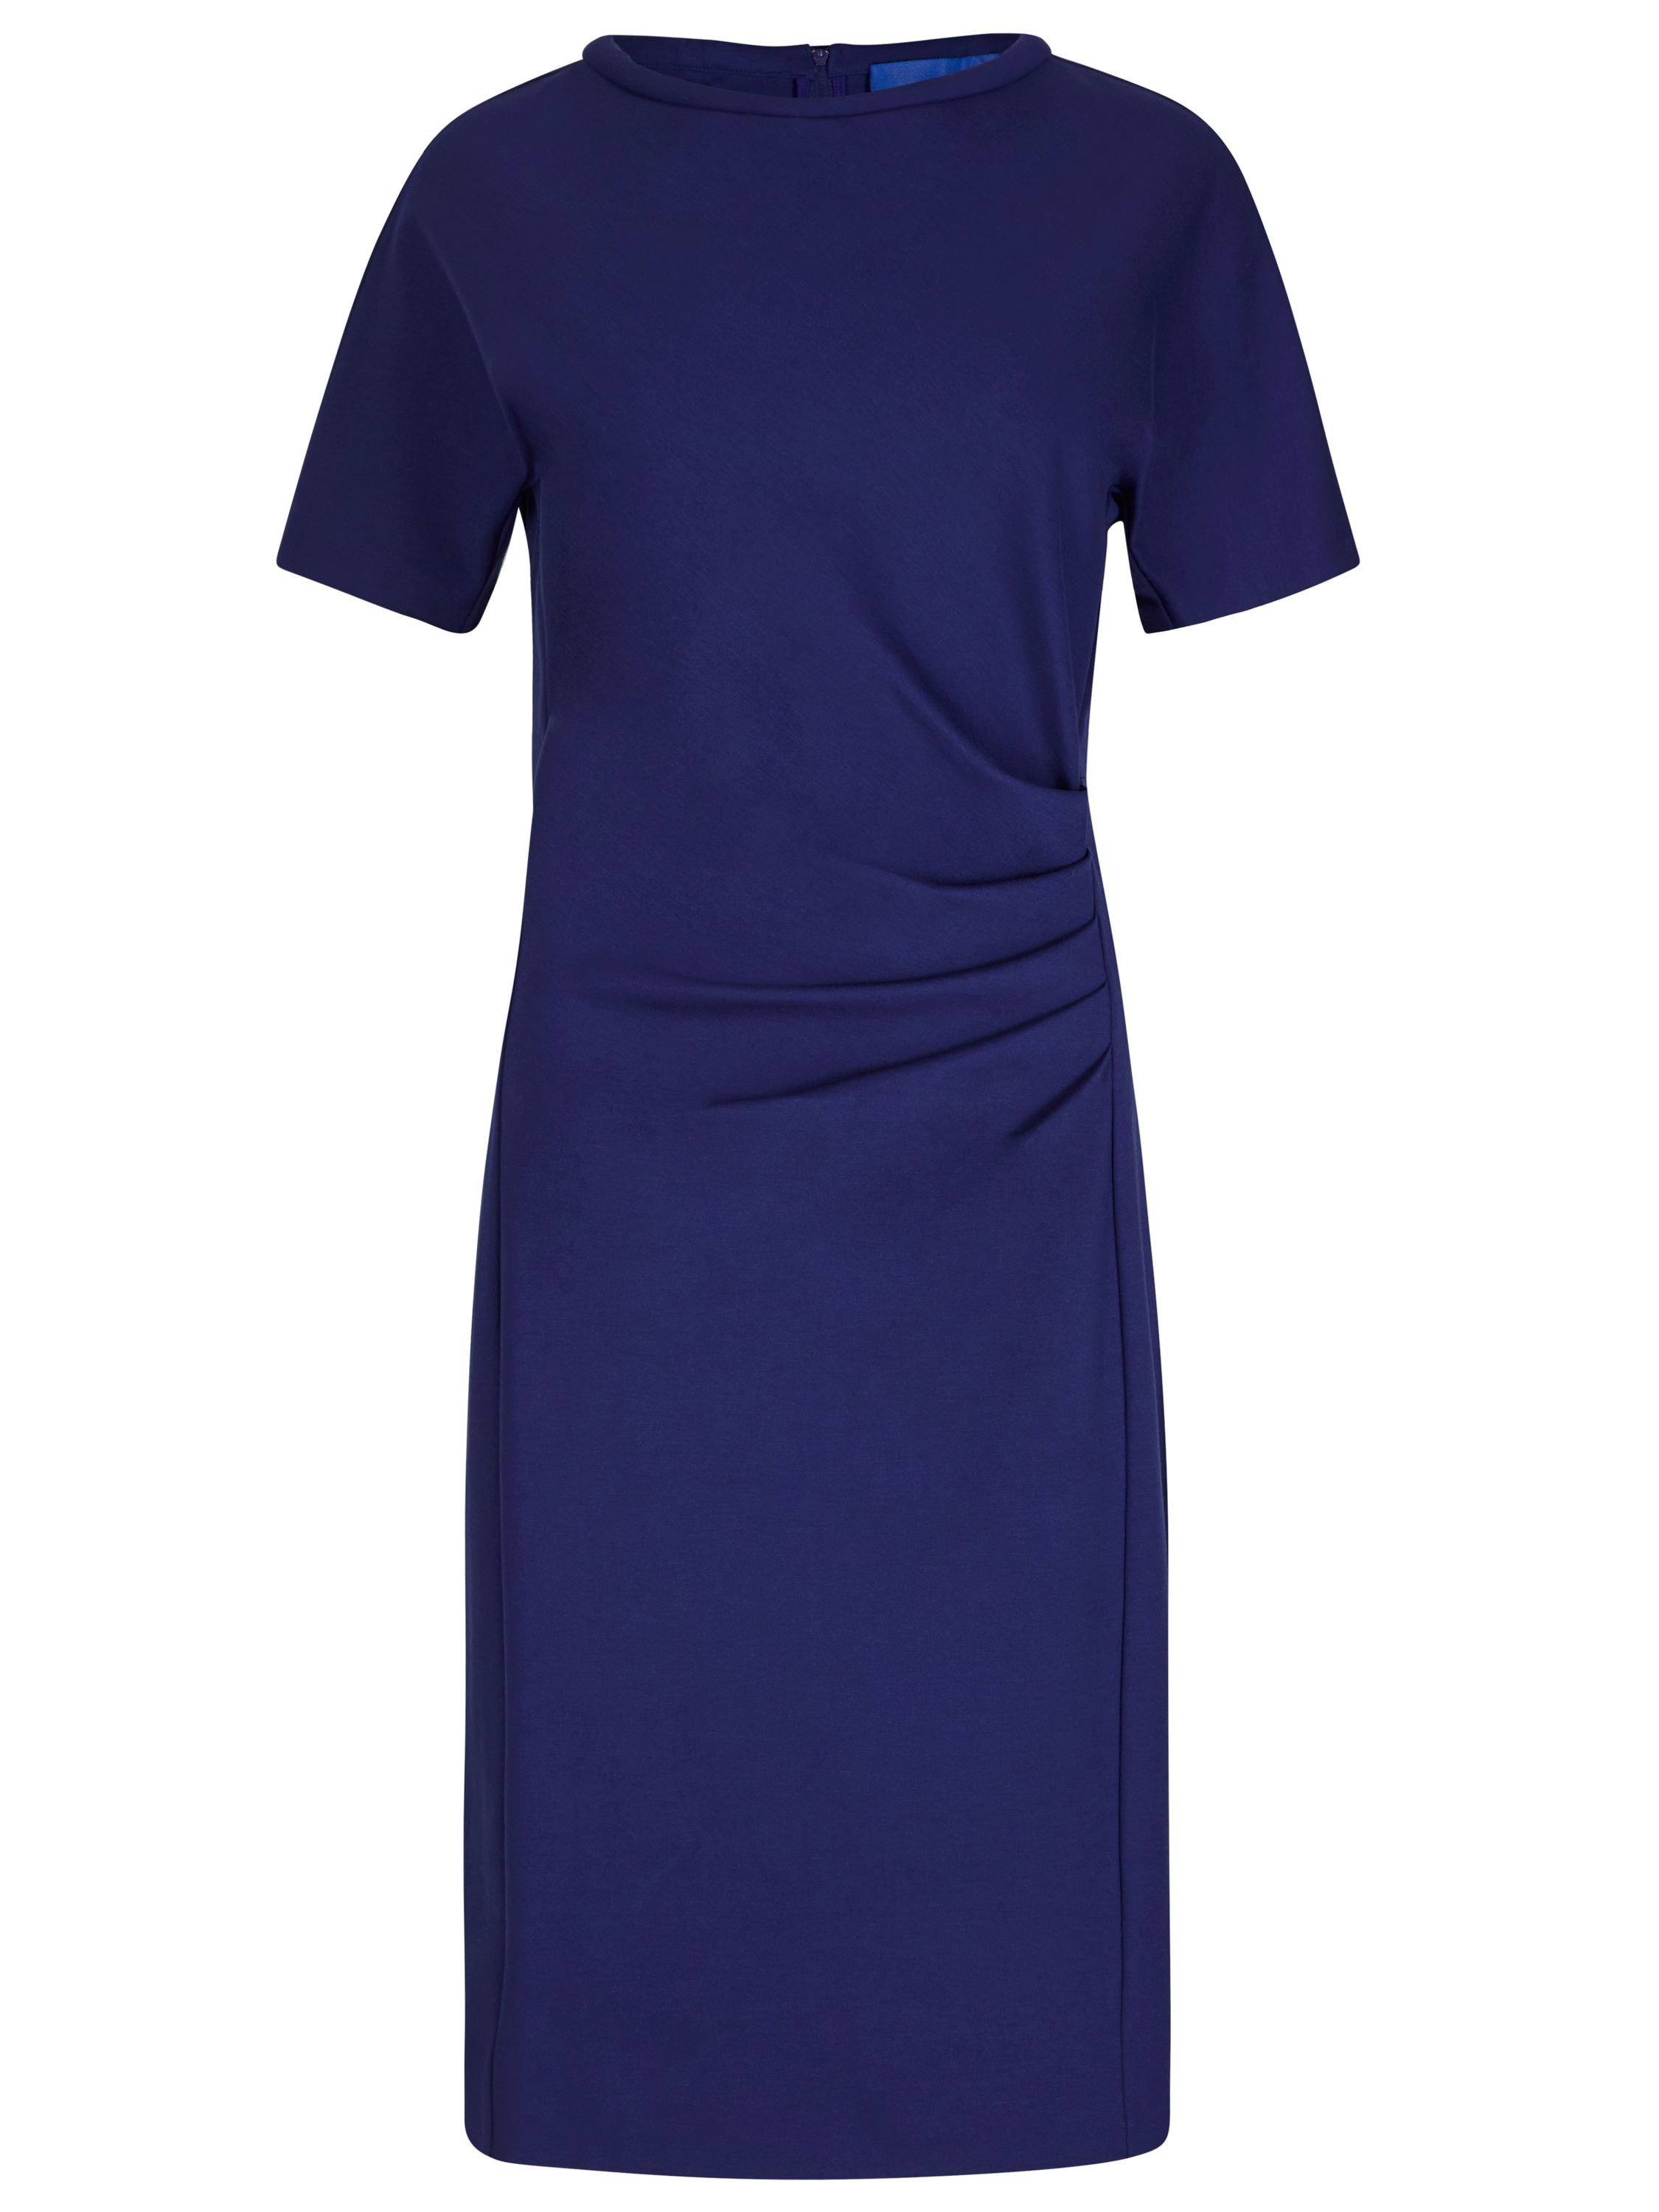 Winser London Miracle Short Sleeve Dress, Blue